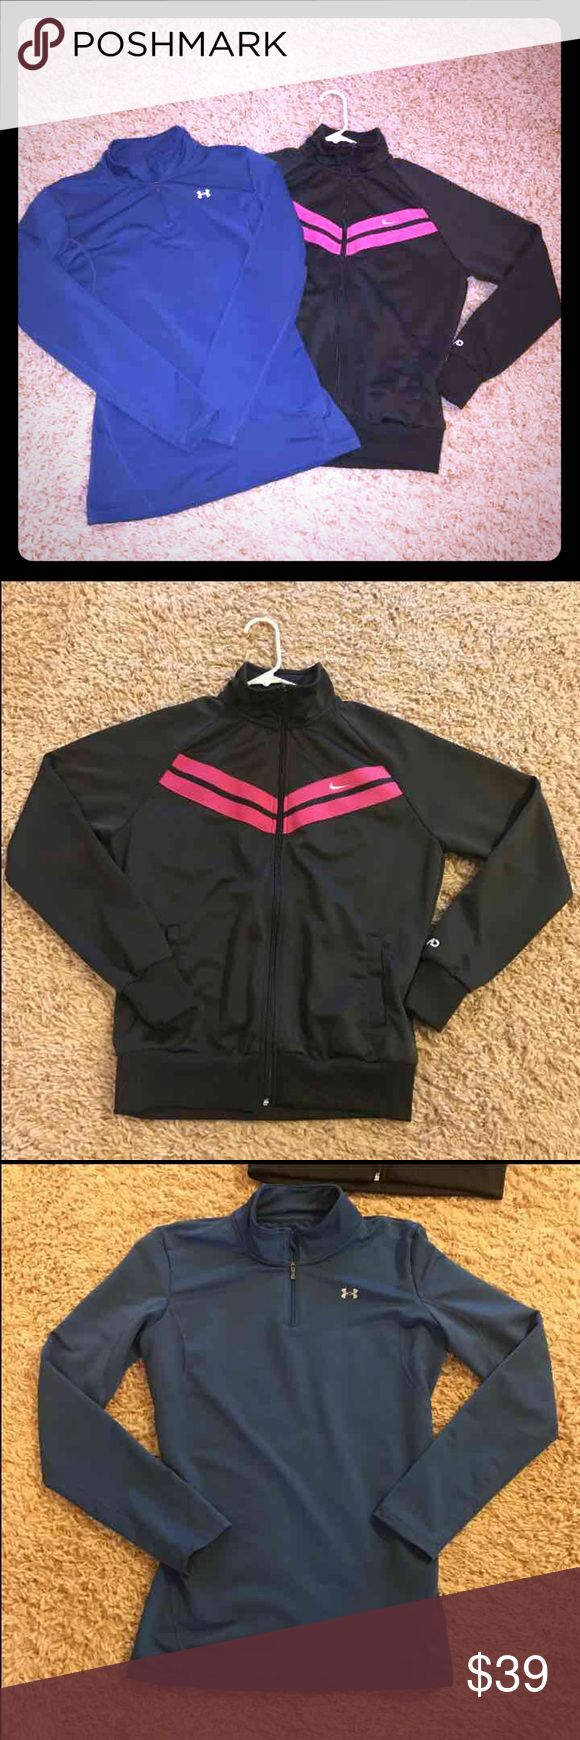 Women's large bundle Under Armour Nike Cute gray with pink striping detail Nike zip up and Navy blue Under Armour long sleeve partial zip. Both size large. Good condition Nike Tops